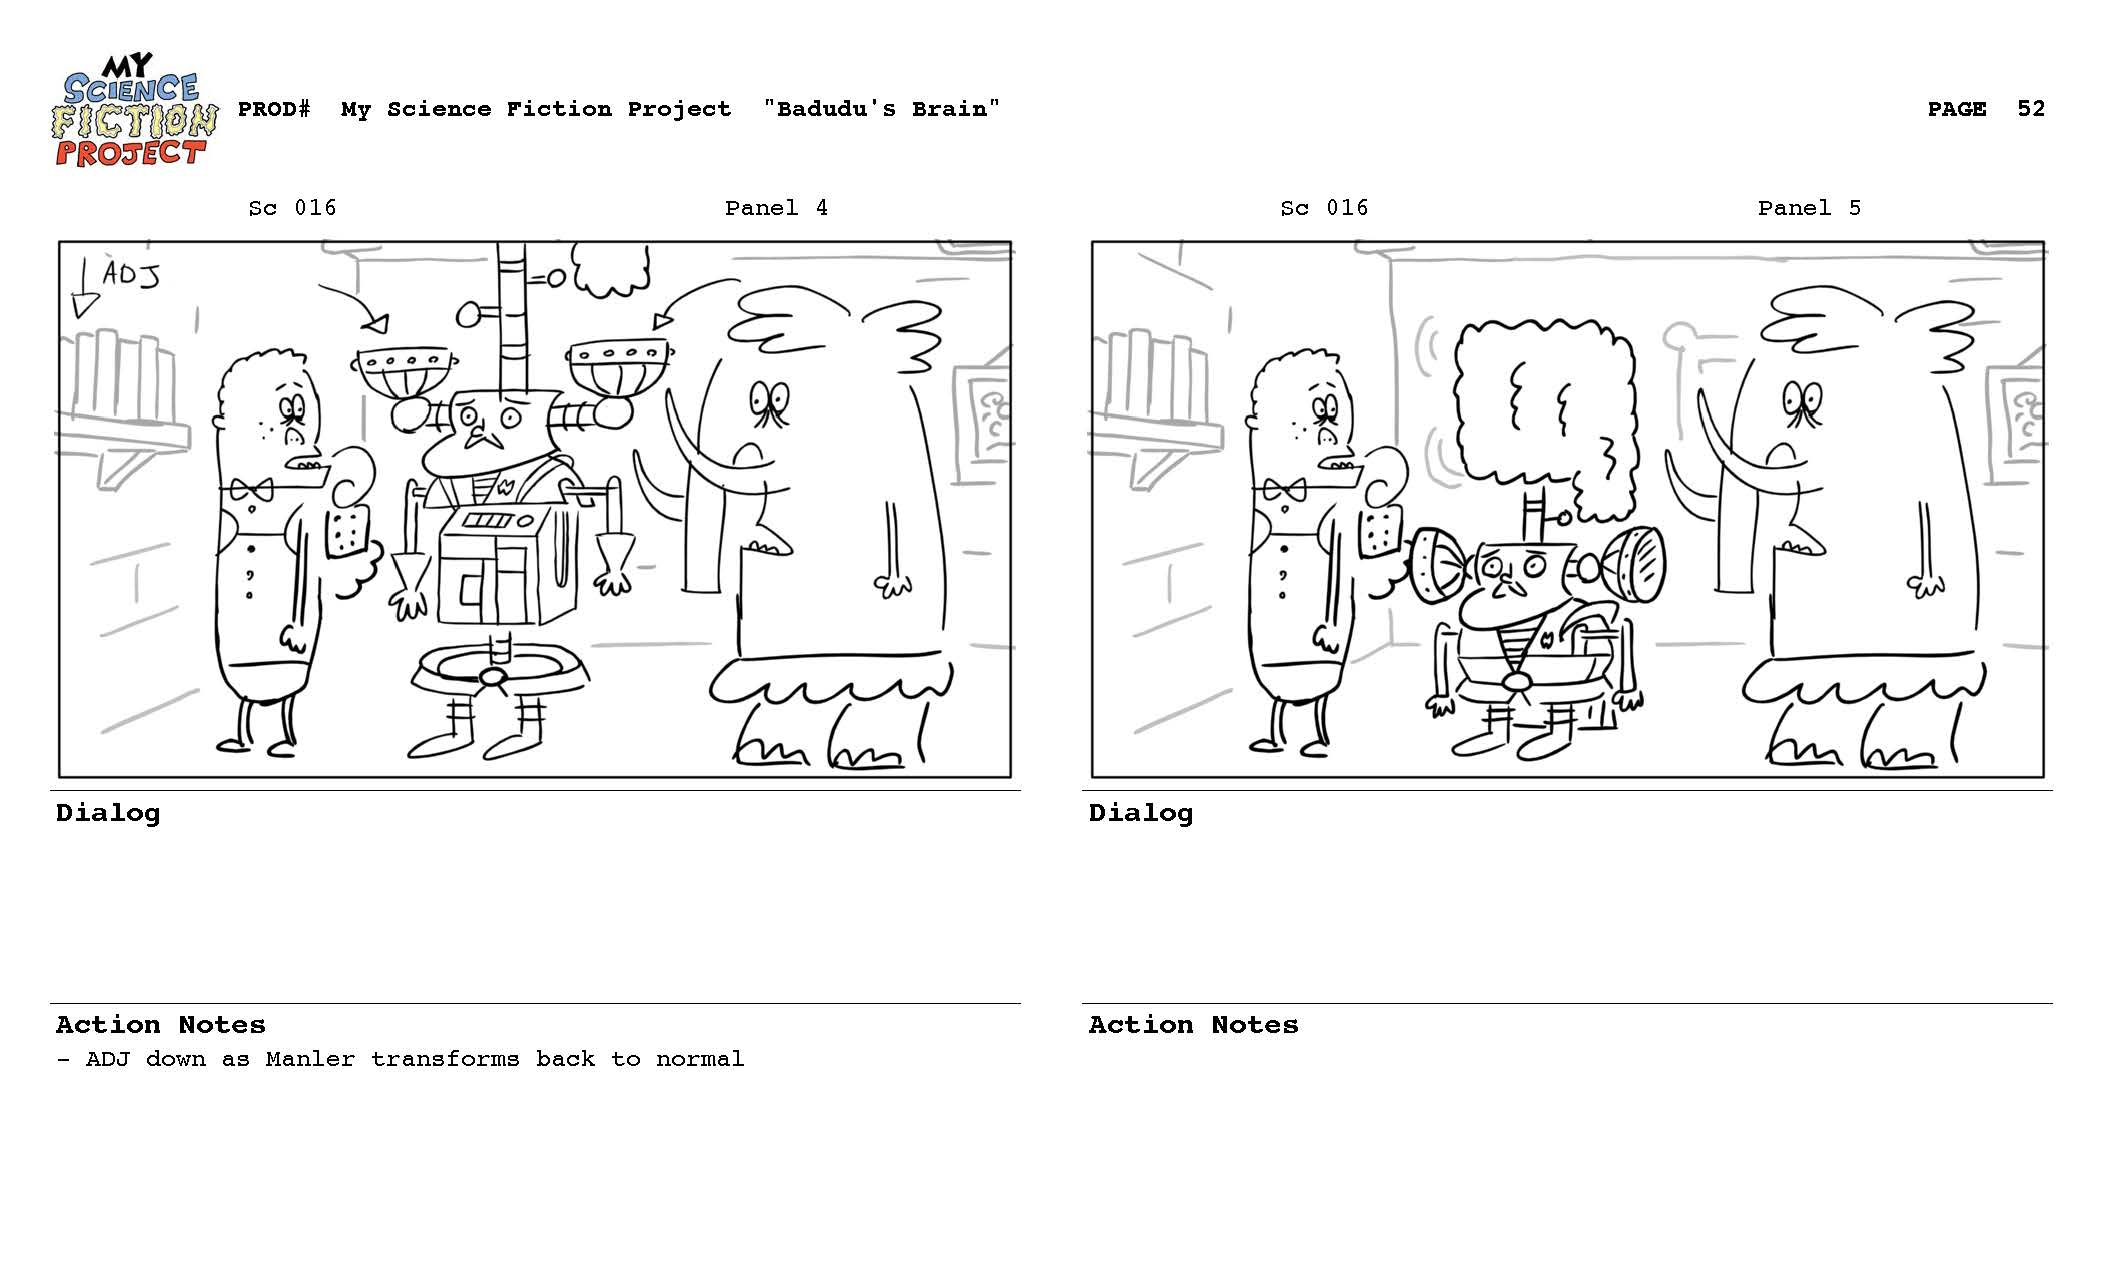 My_Science_Fiction_Project_SB_083112_reduced_Page_052.jpg